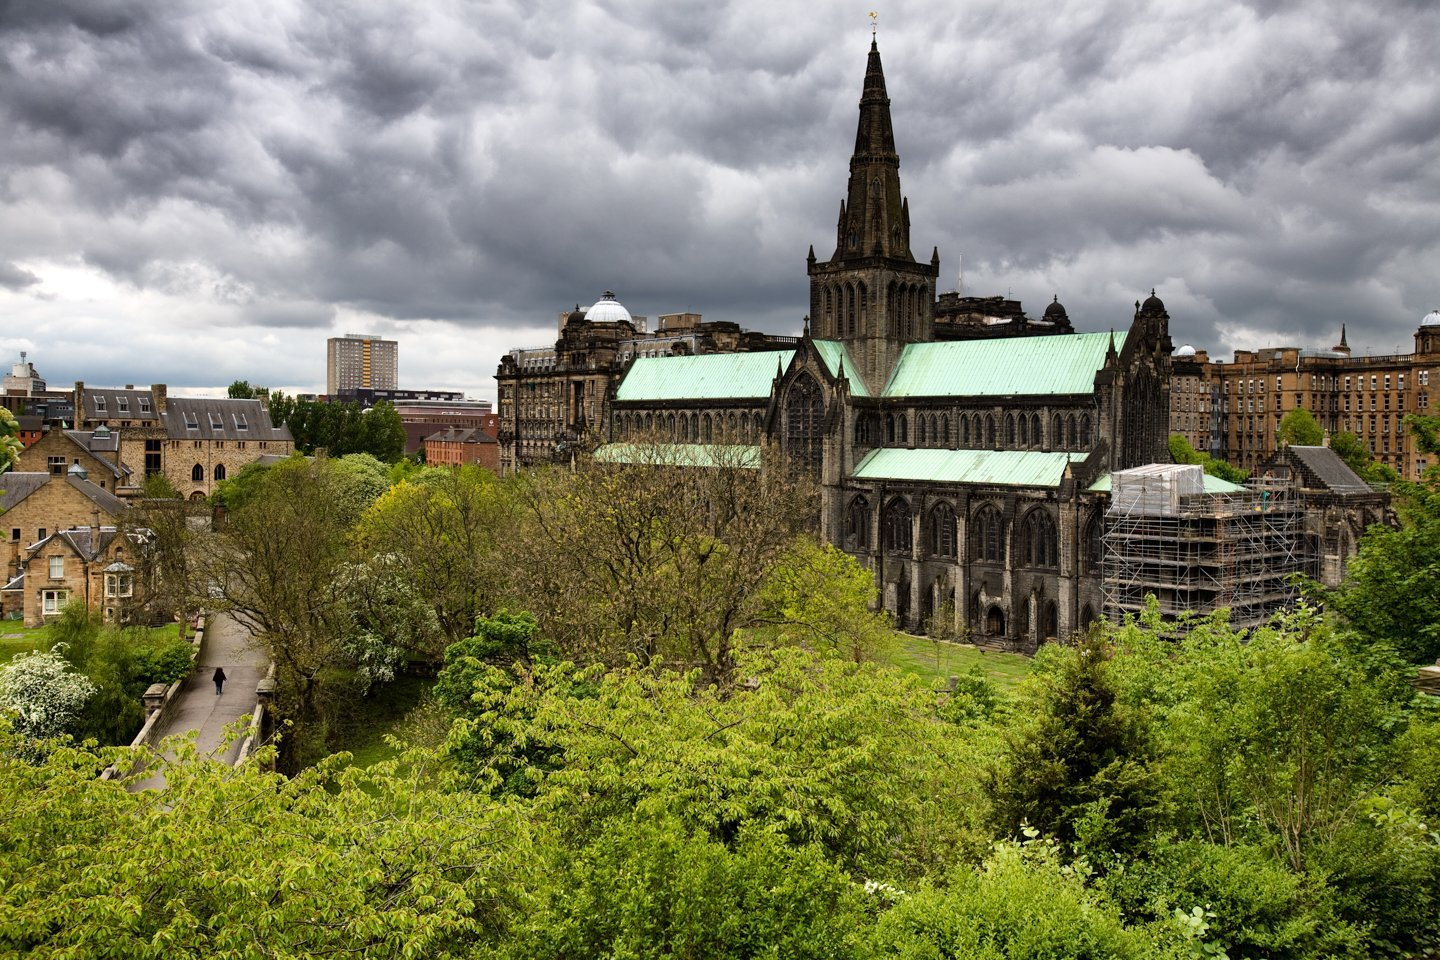 St Mary's Cathedral, Glasgow, May 13, 2007